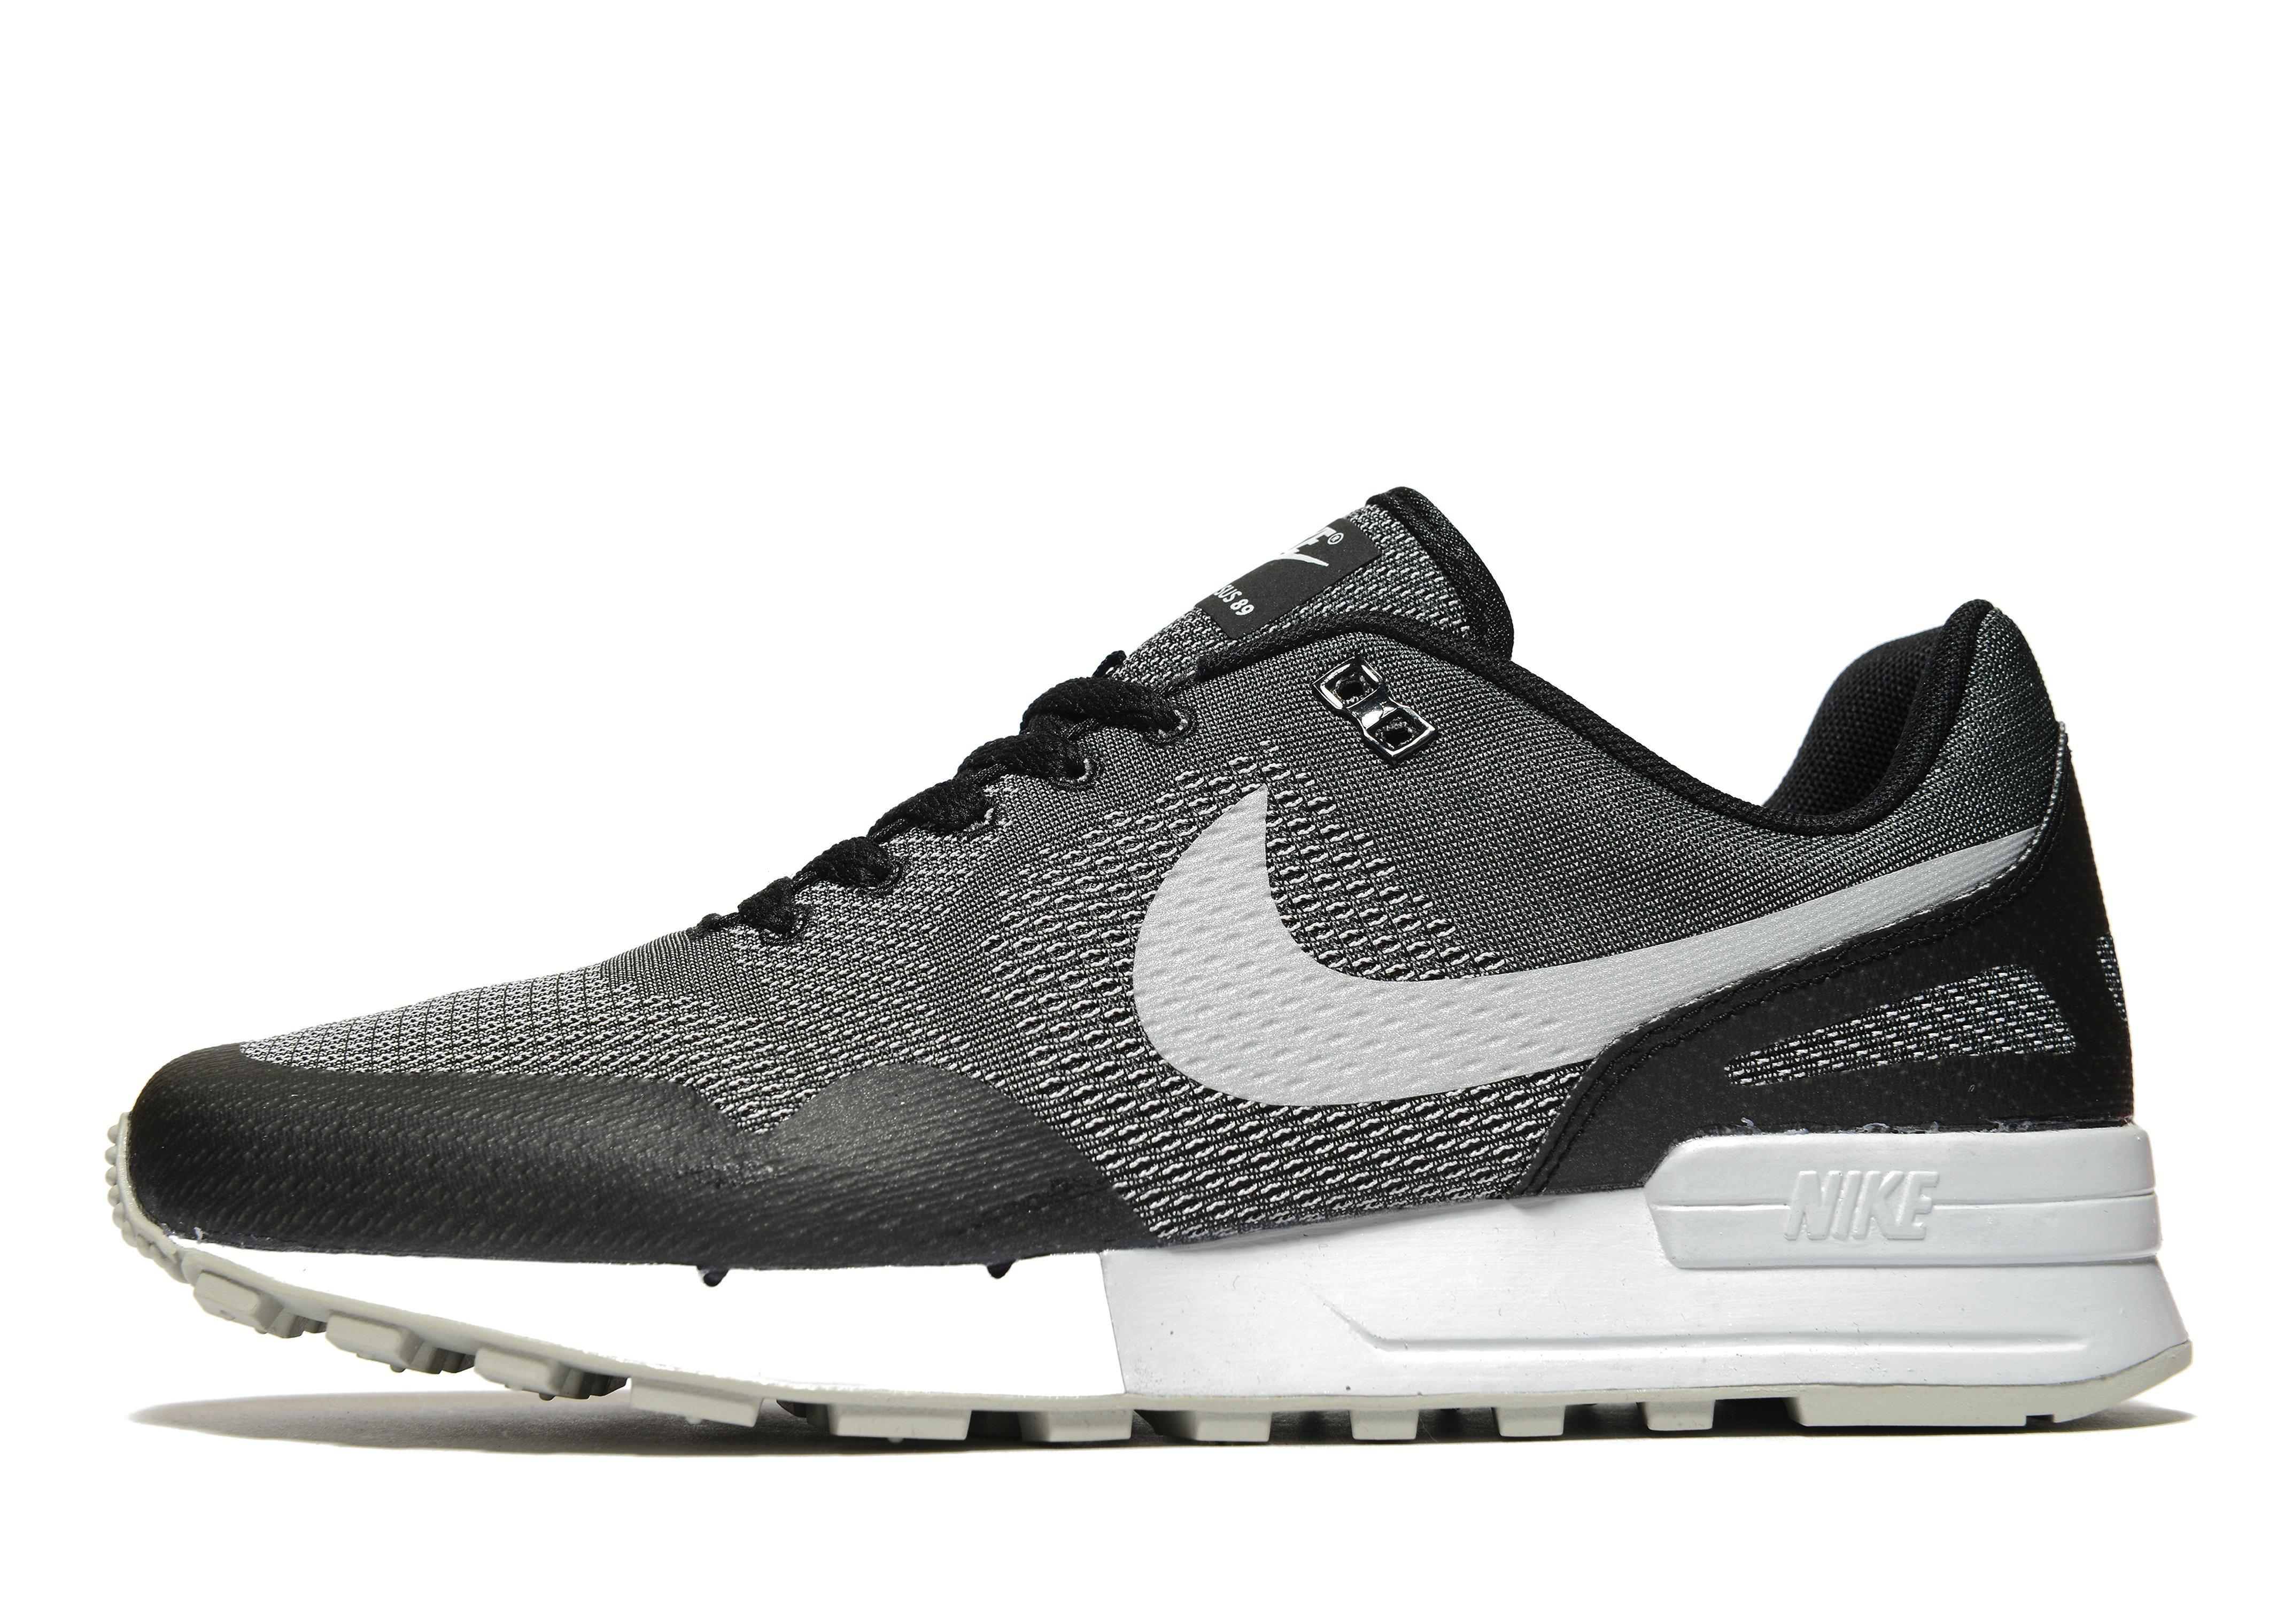 lyst nike pegasus 89 in black for men. Black Bedroom Furniture Sets. Home Design Ideas